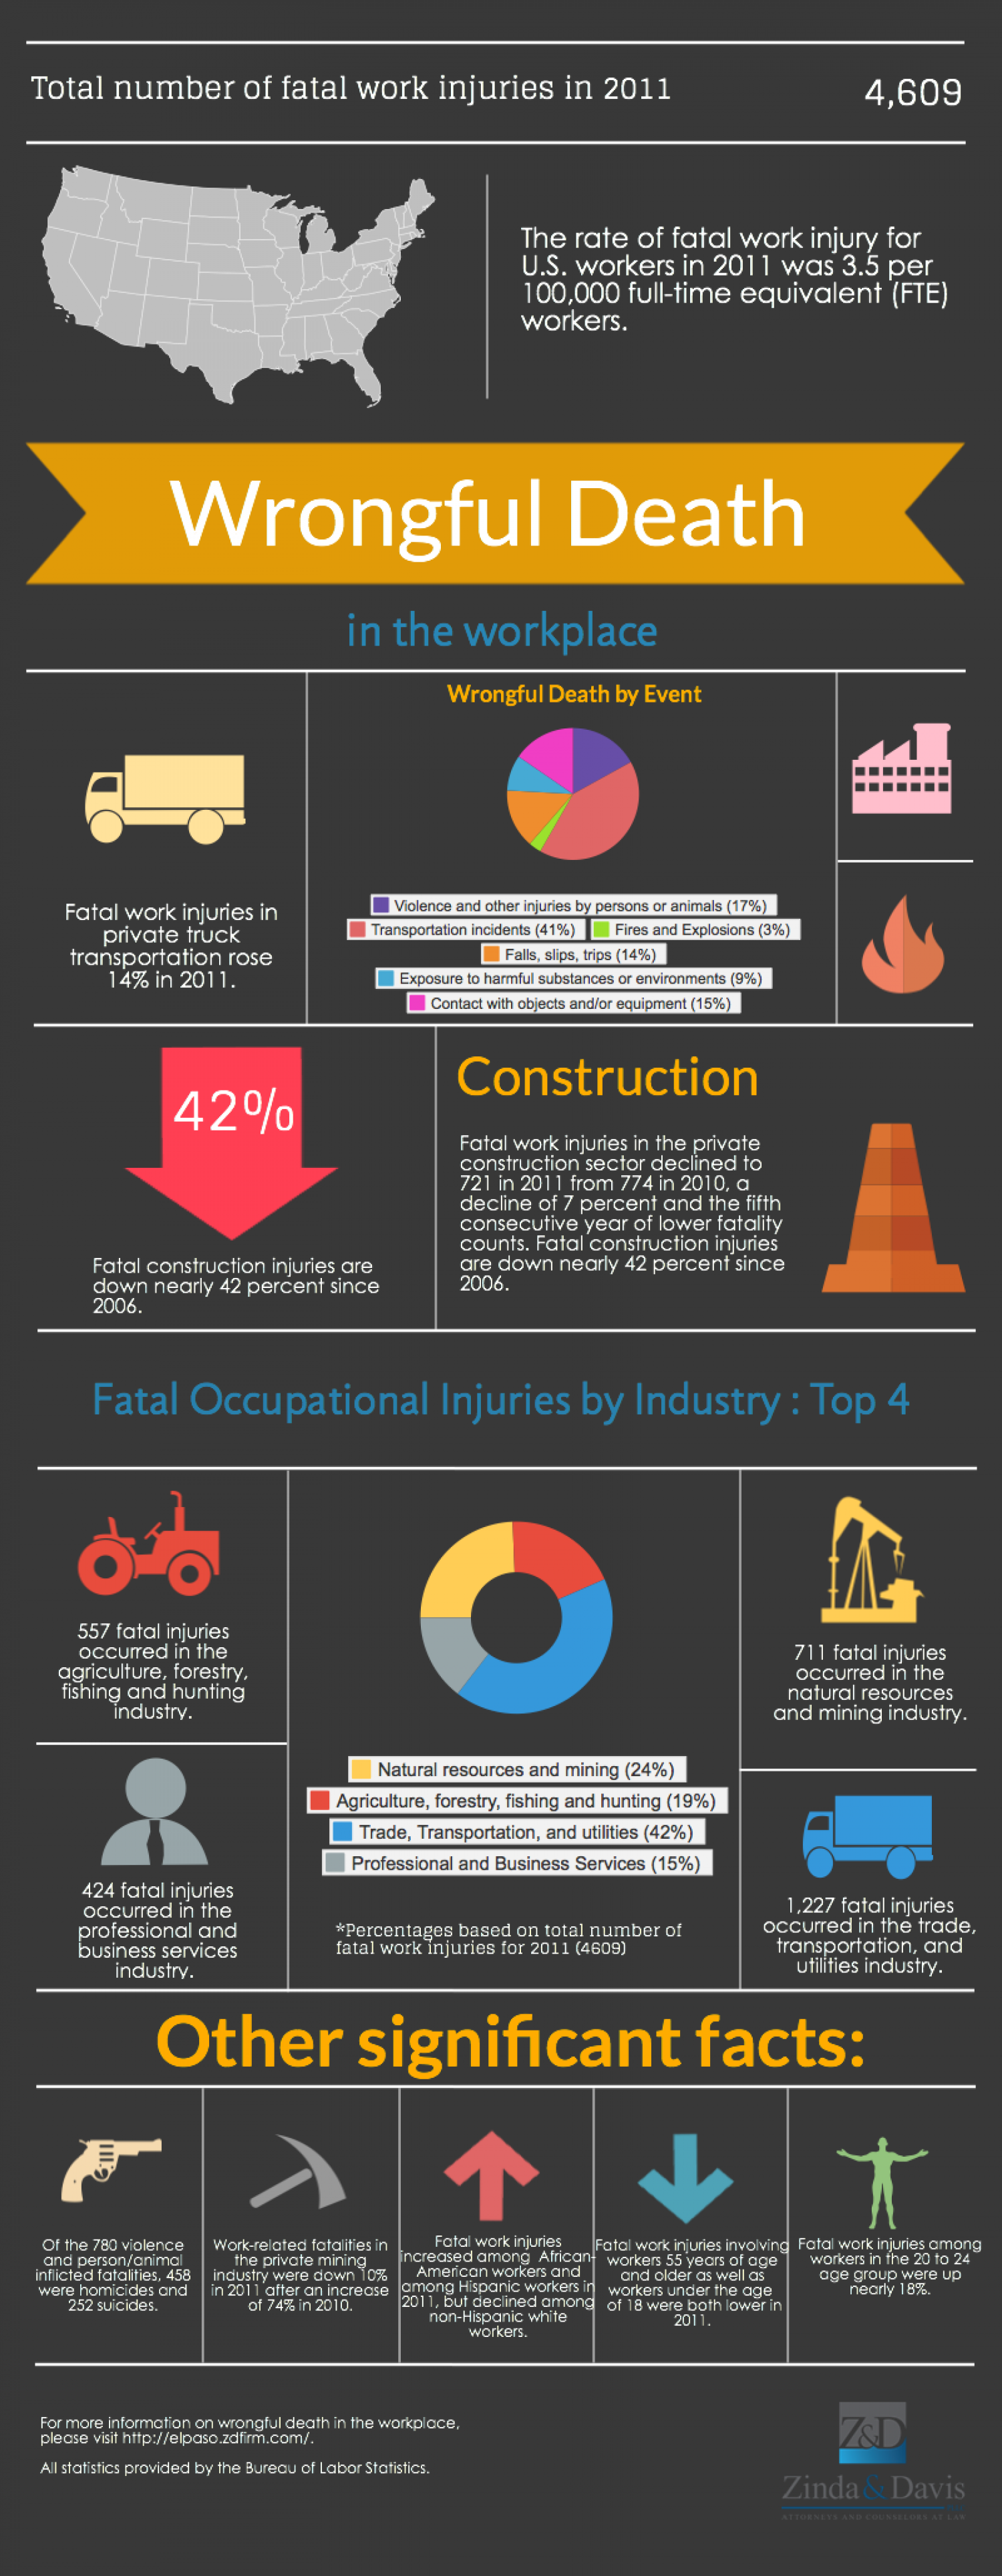 Wrongful Death in the Workplace Infographic